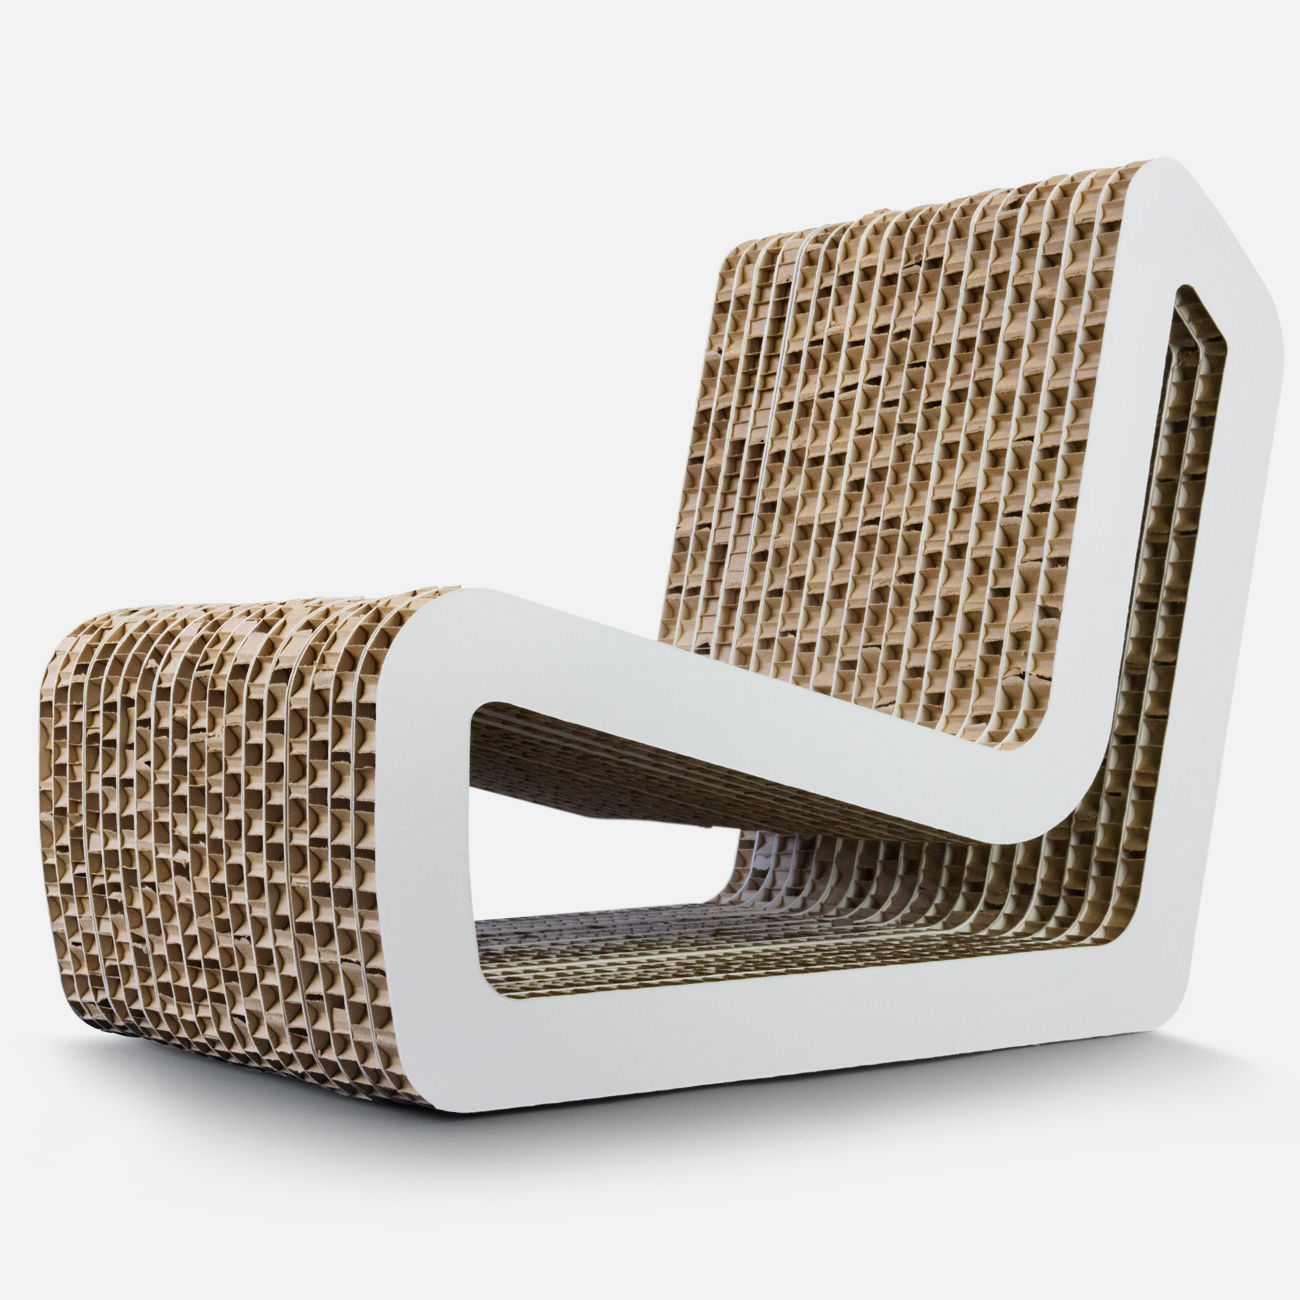 Chair by Dufaylite made from honeycomb paper board